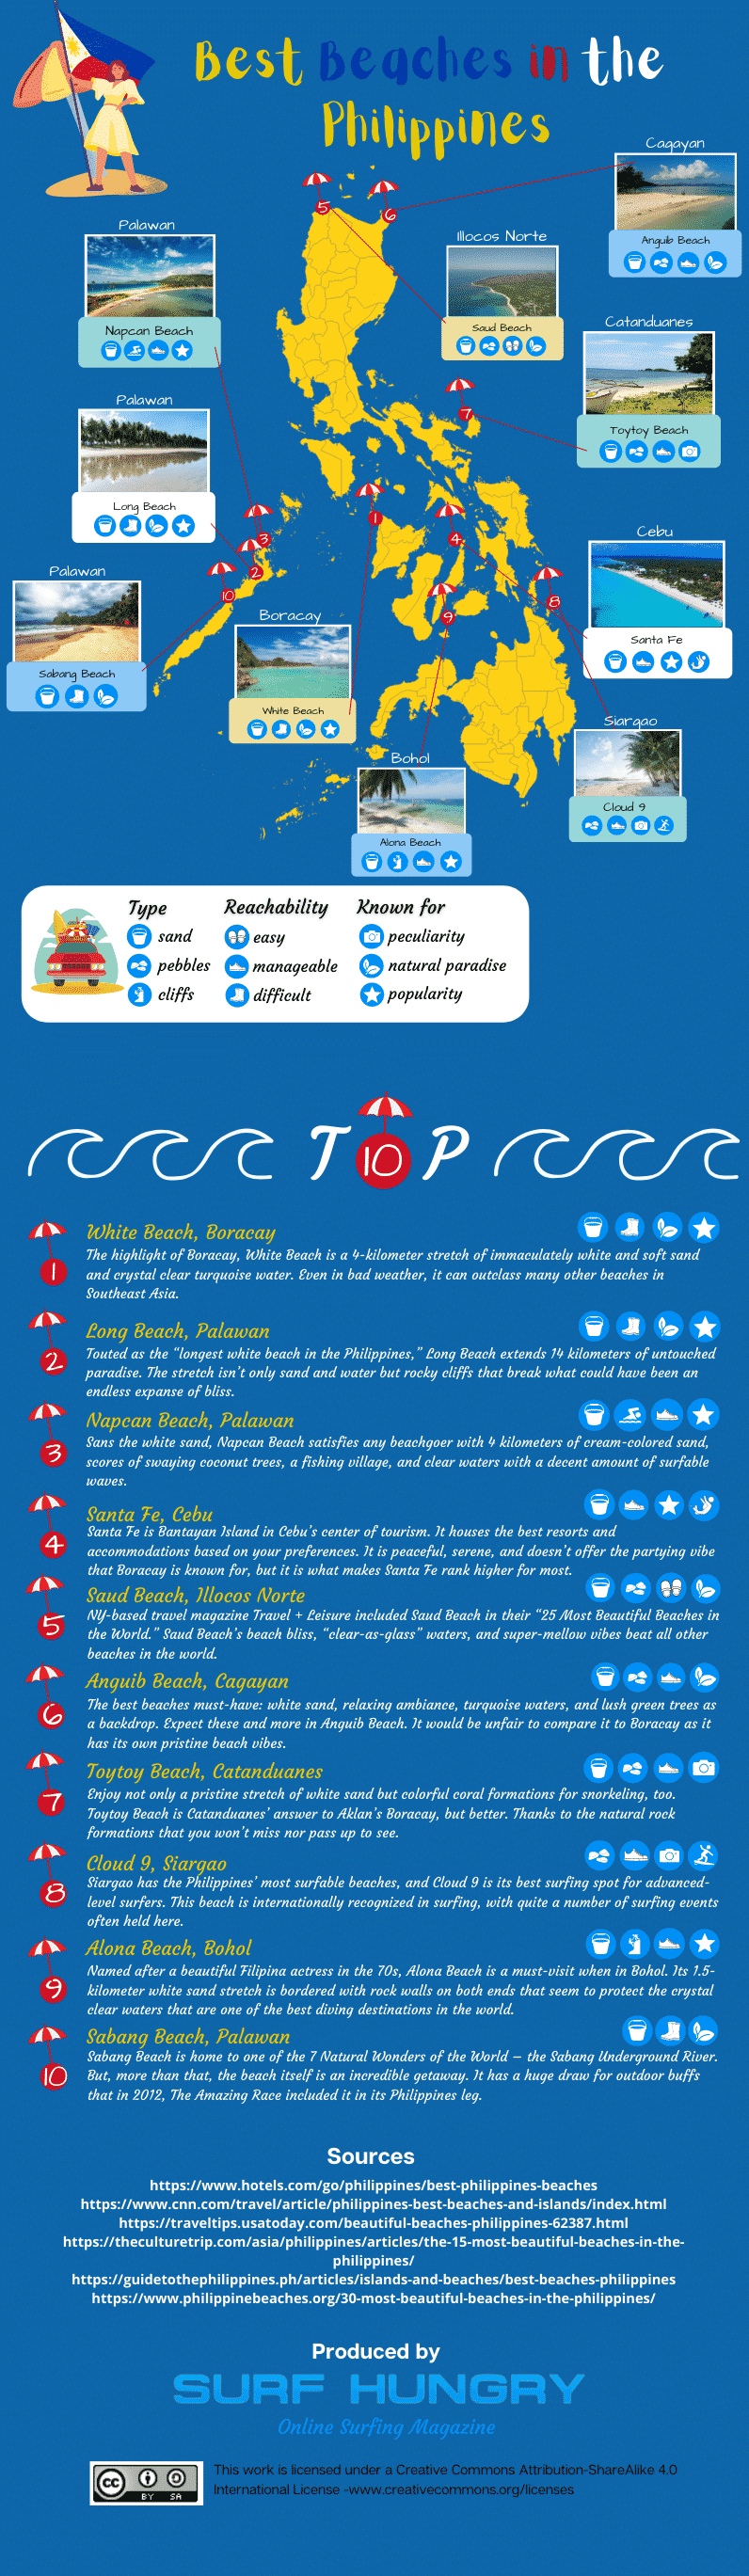 beaches in the philippines infographic